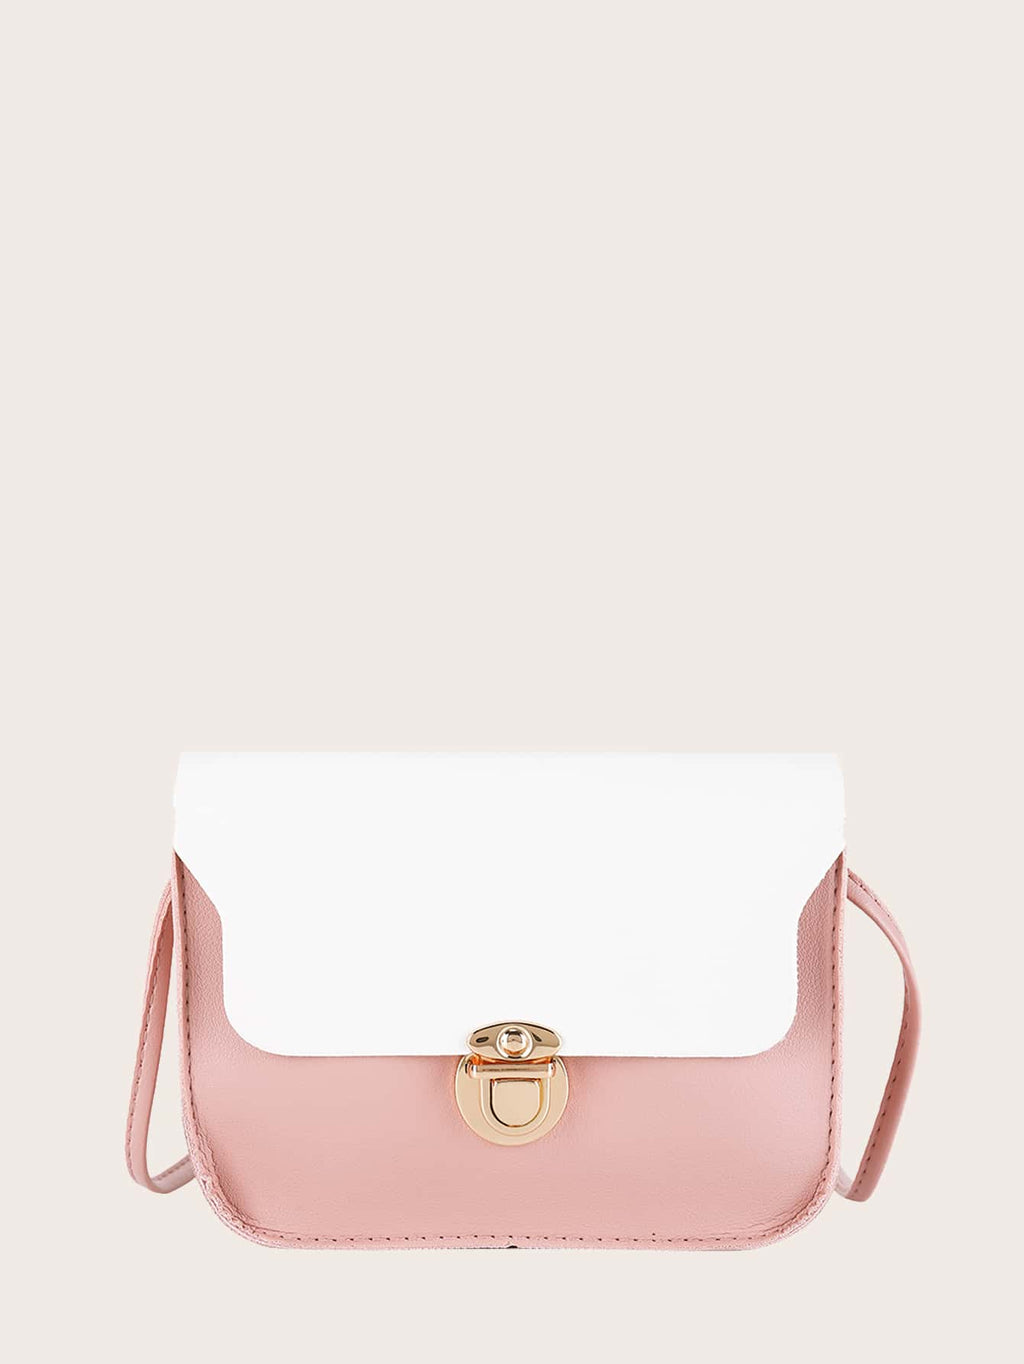 Girls Push Lock Two Tone Crossbody Bag